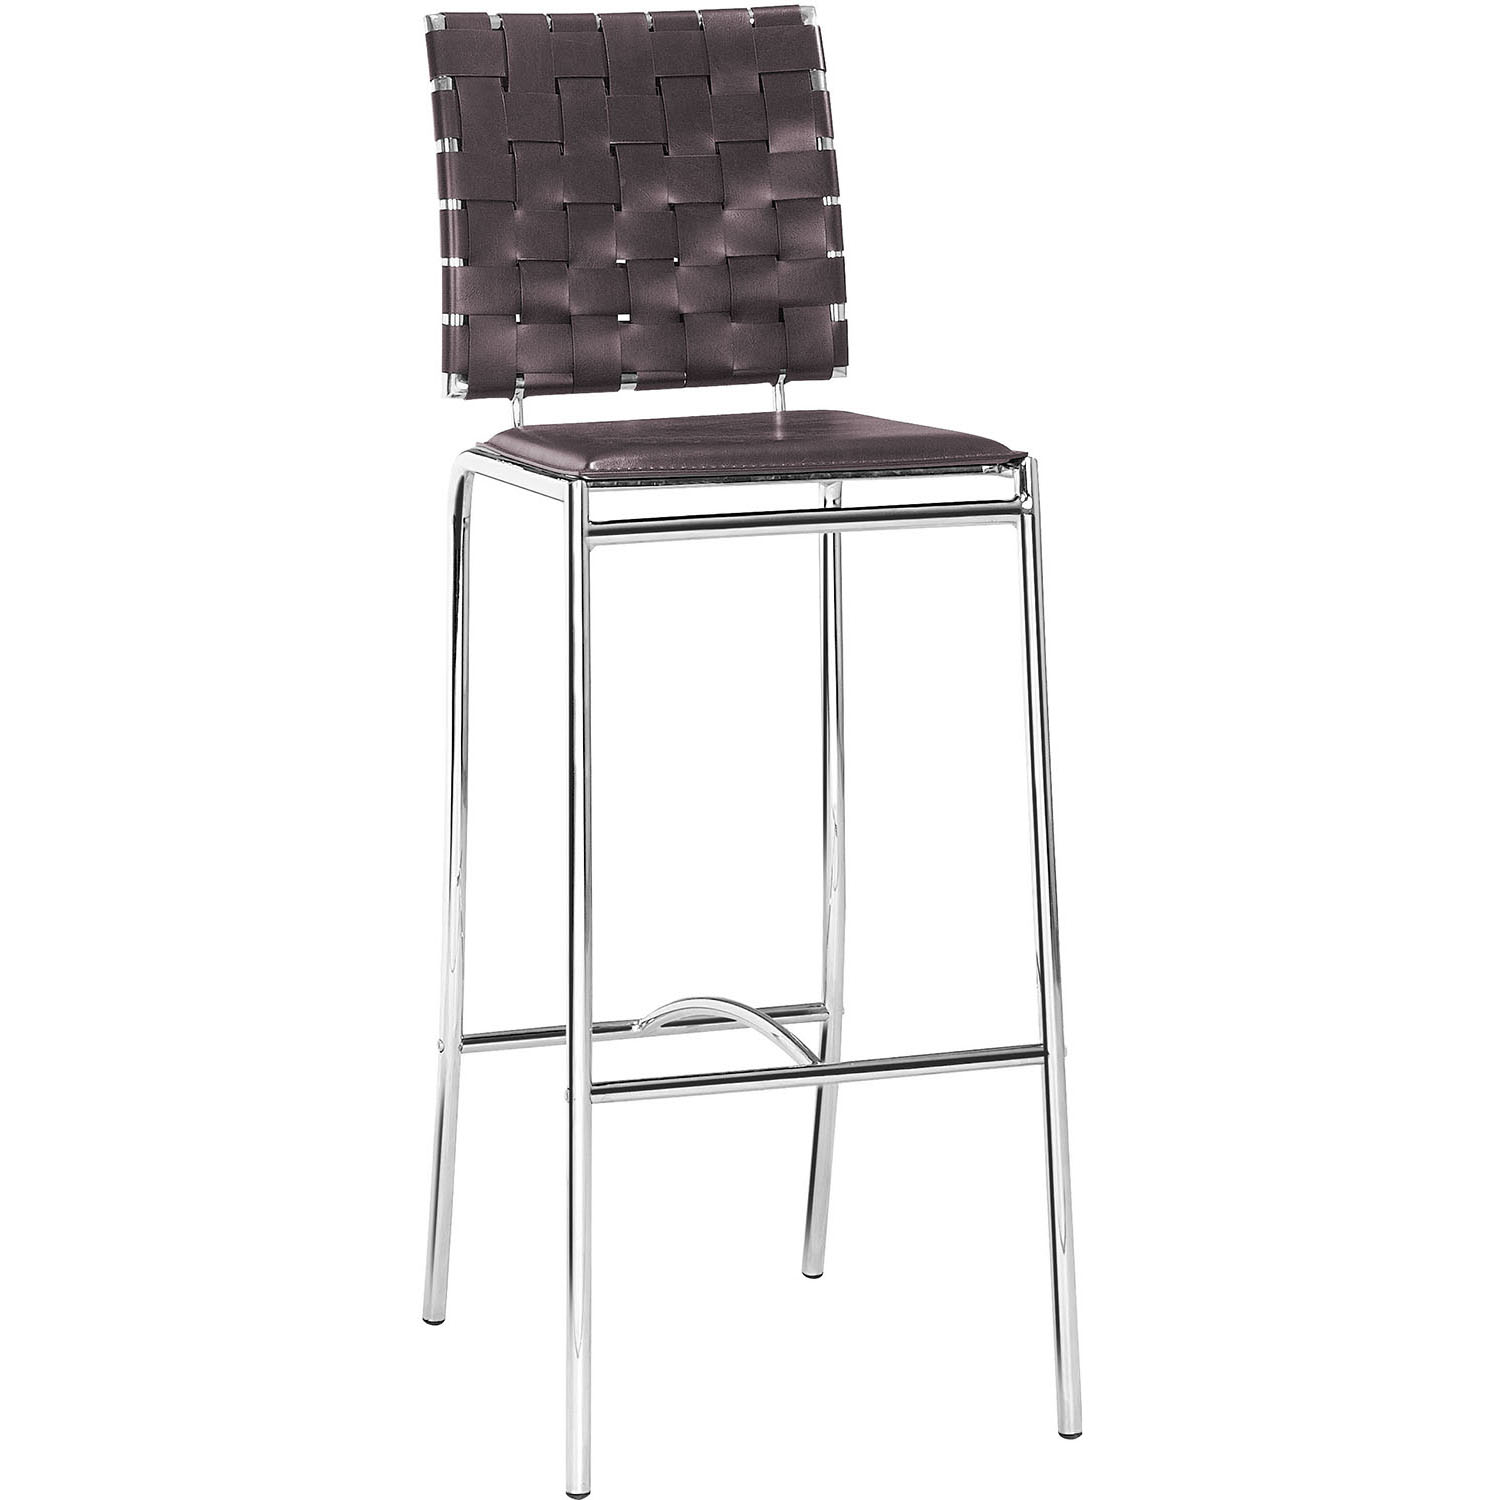 One of a kind Modern Criss Cross Bar Chairs  Product Photo